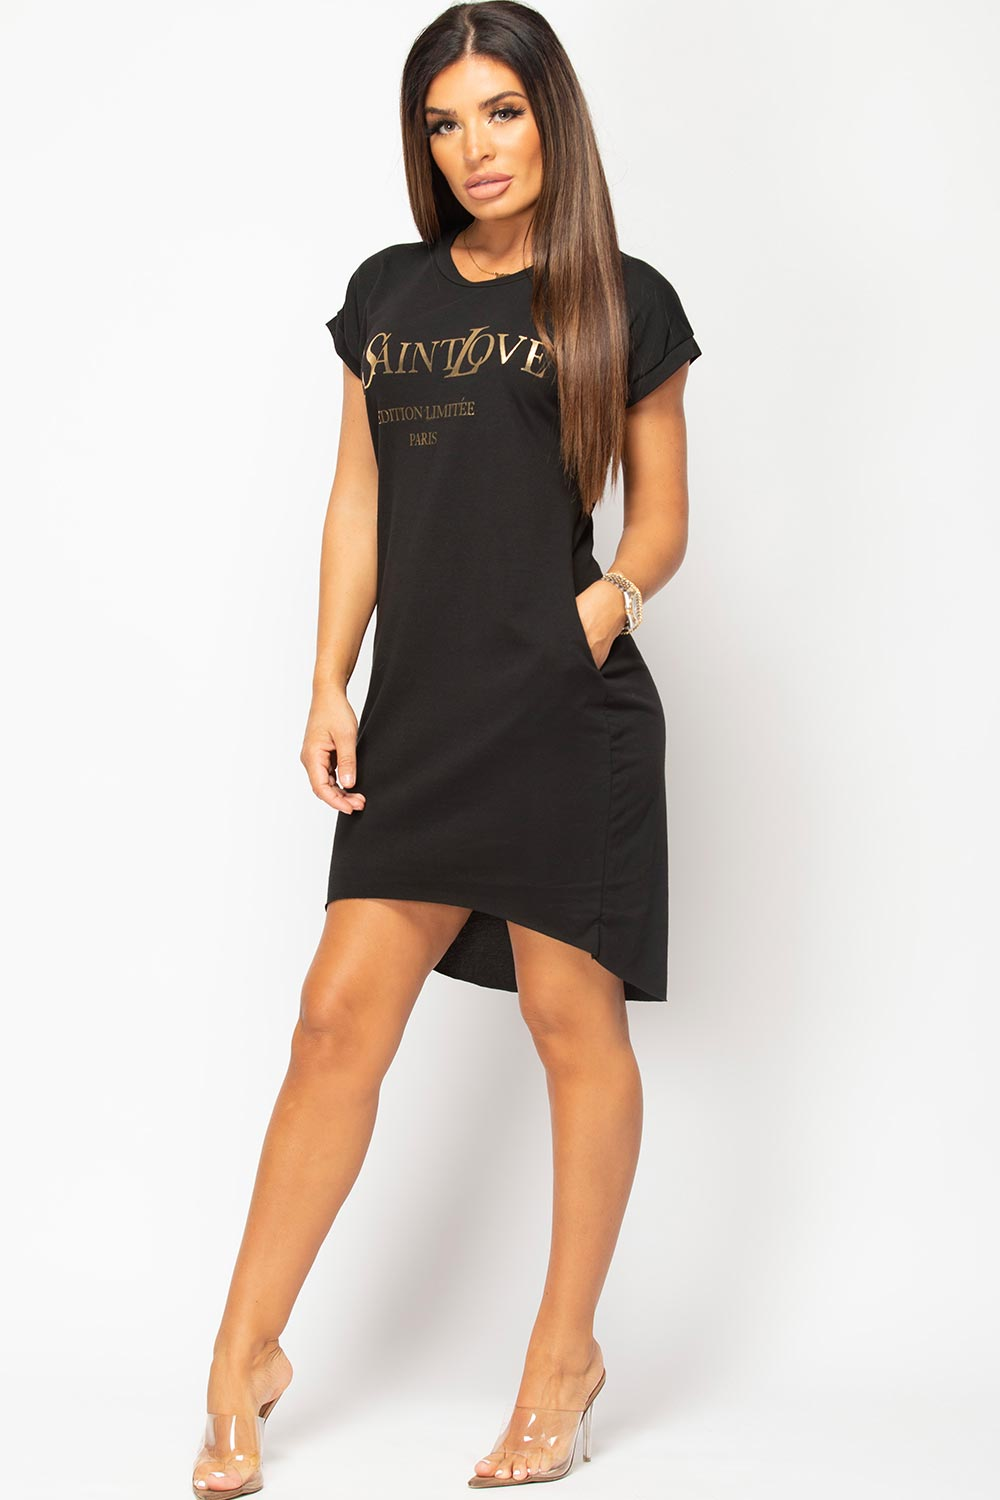 black t shirt dress ye saint love slogan